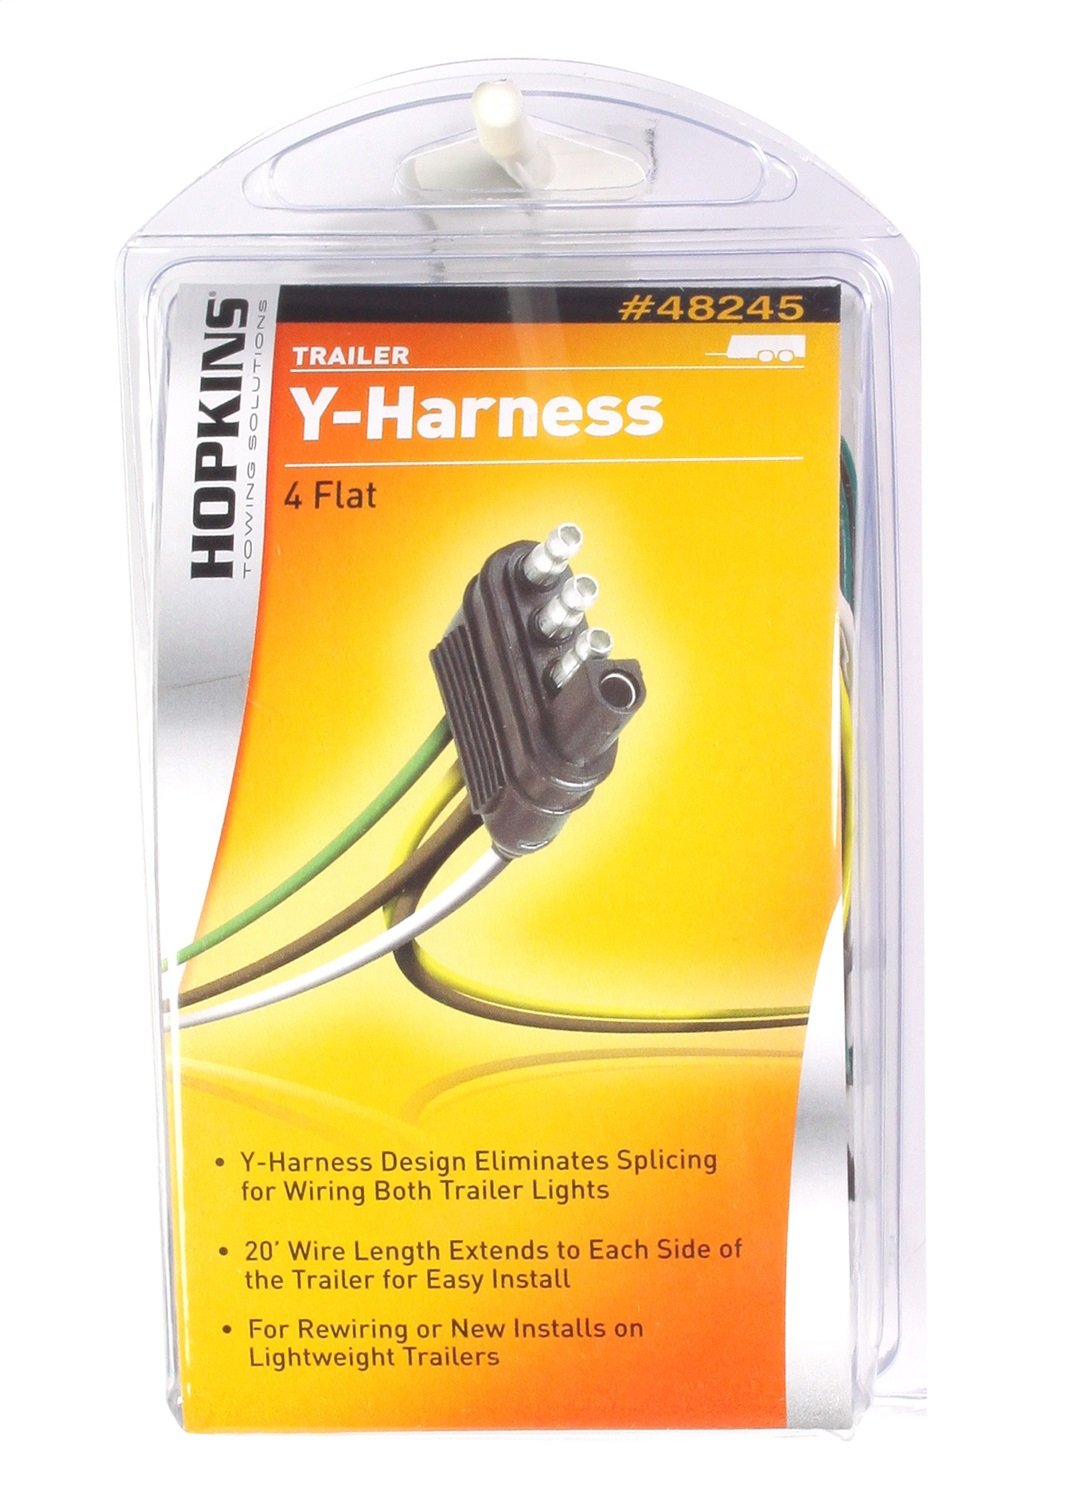 Amazon.com: Hopkins 48245 4 Wire Flat 20' Trailer End Y-Harness, 20 Feet:  Automotive